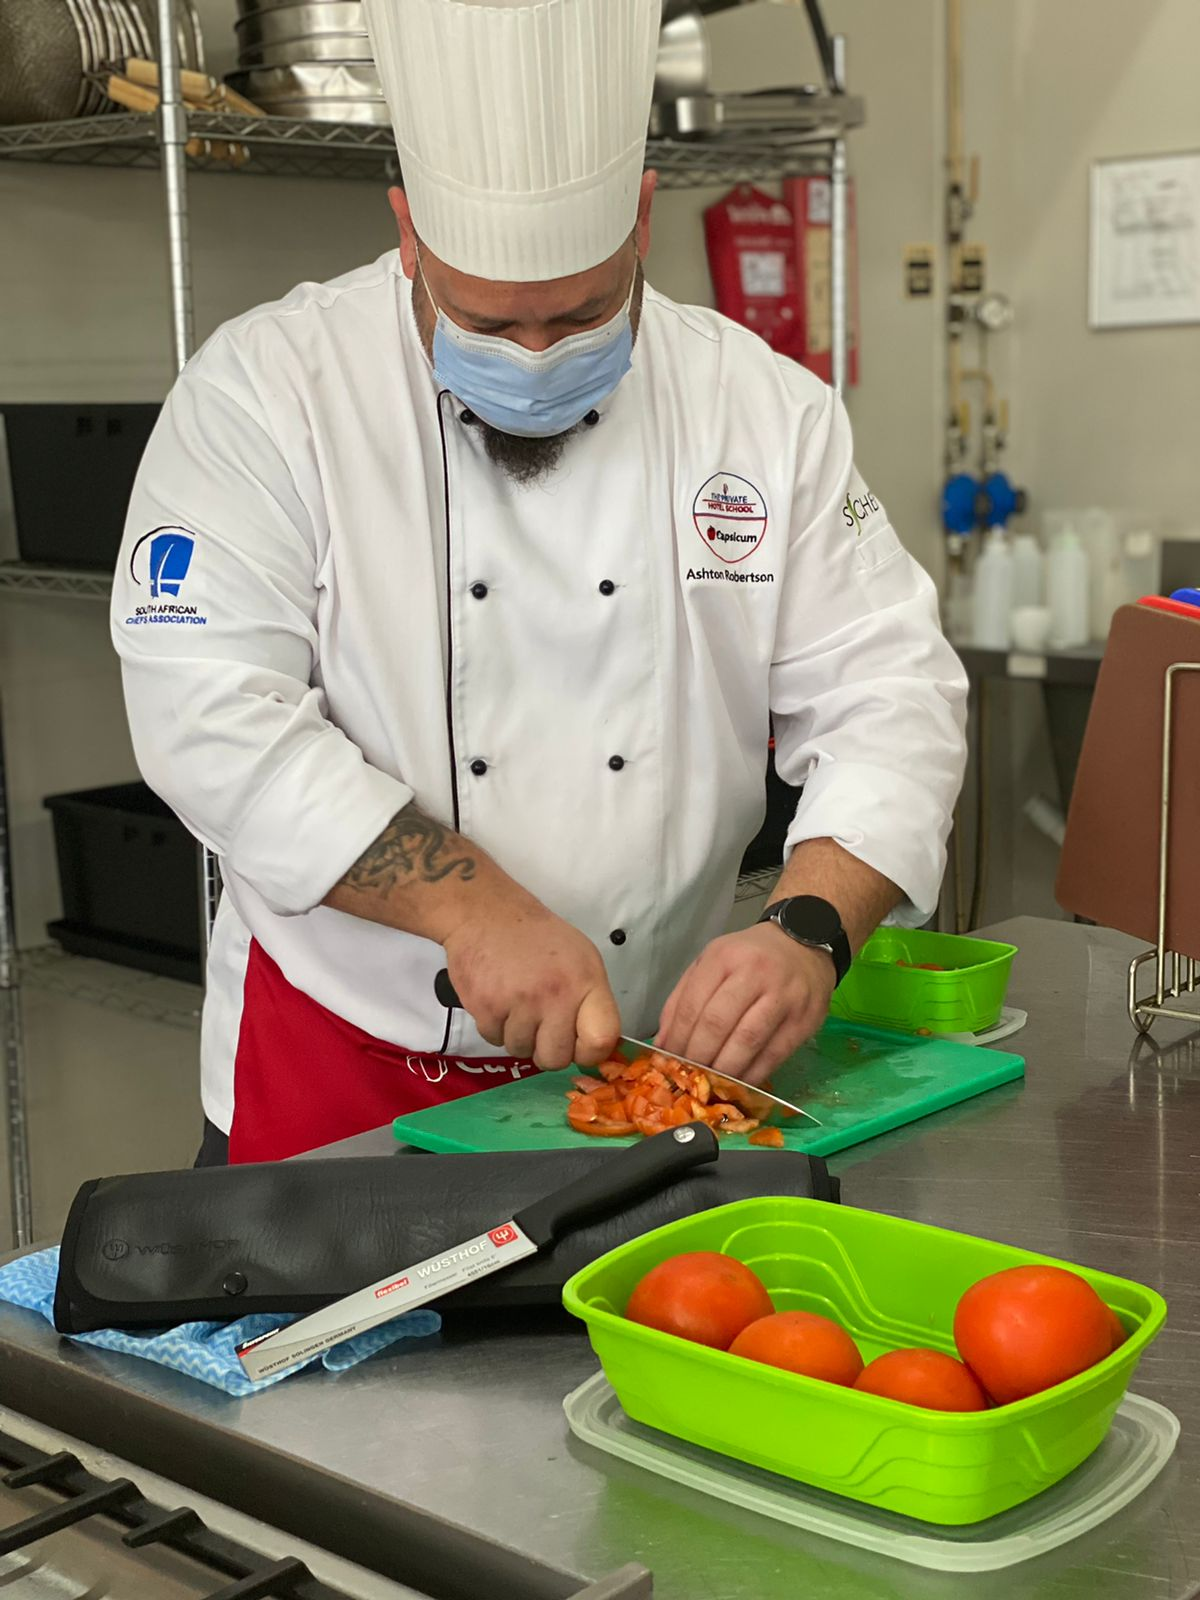 Chef Ashton Robertson from the Cape Town campus